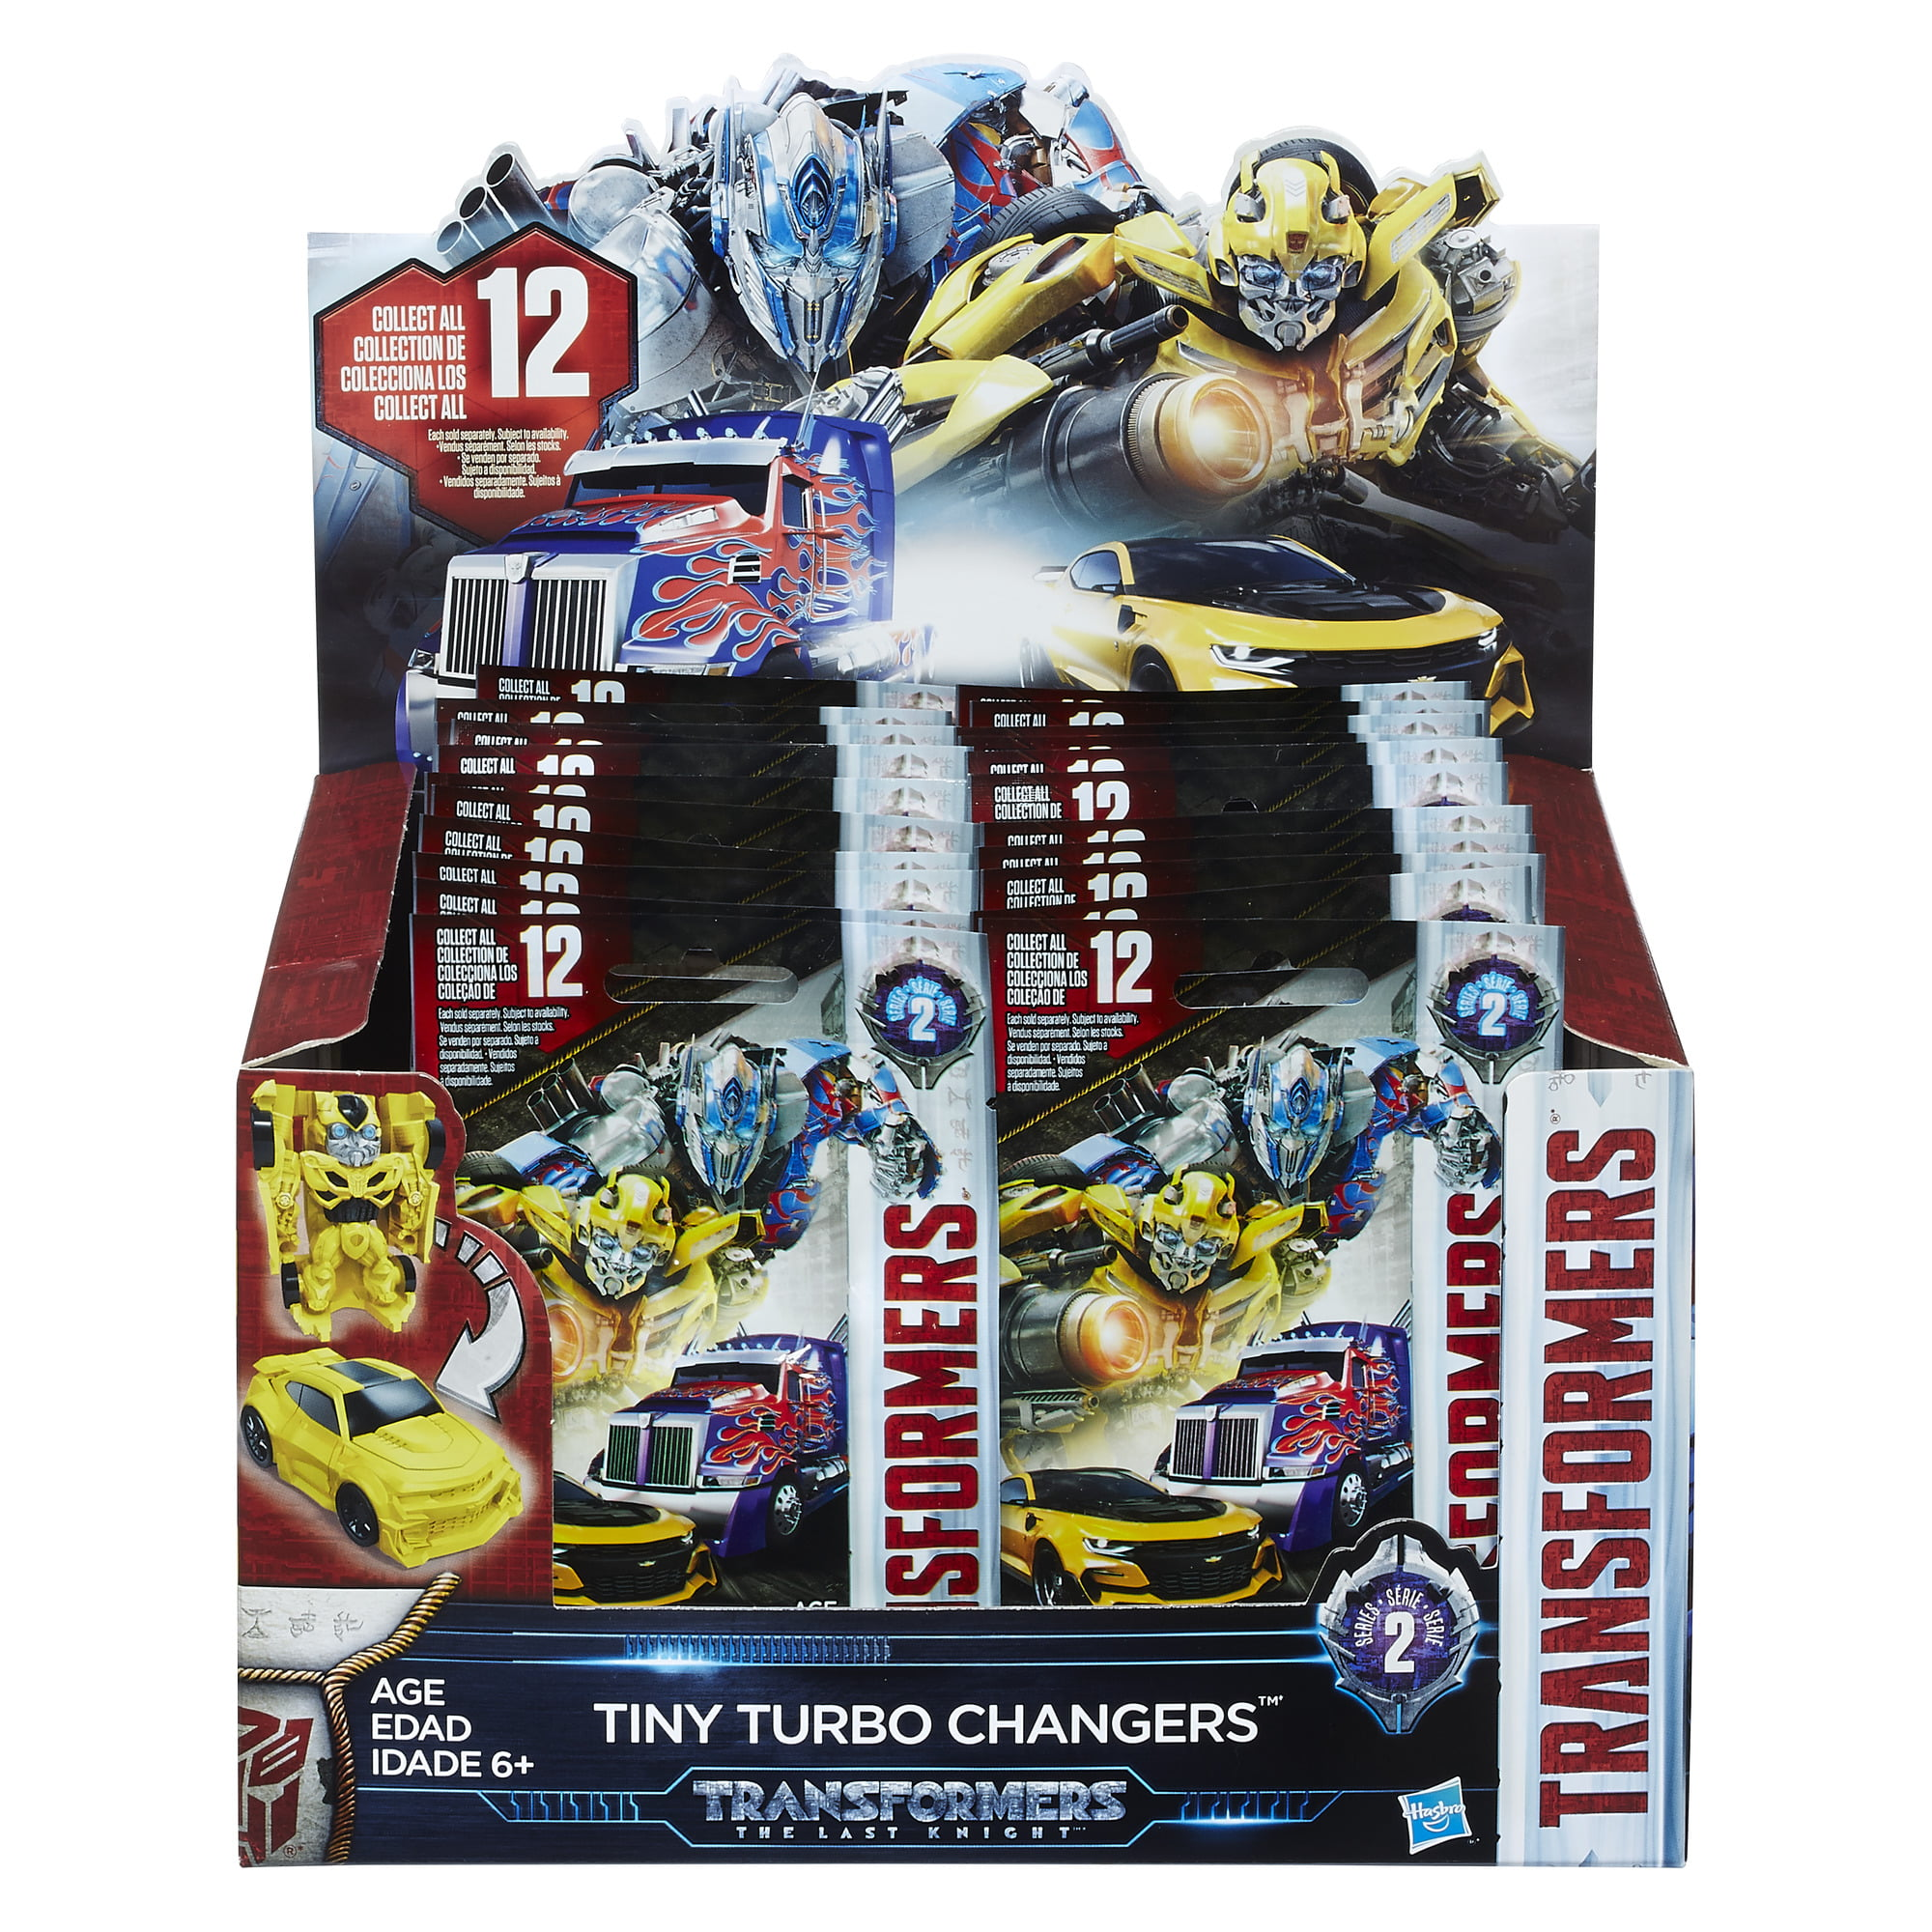 Transformers The Last Knight Tiny Turbo Changer Blind Bags Series 1 Choose Yours